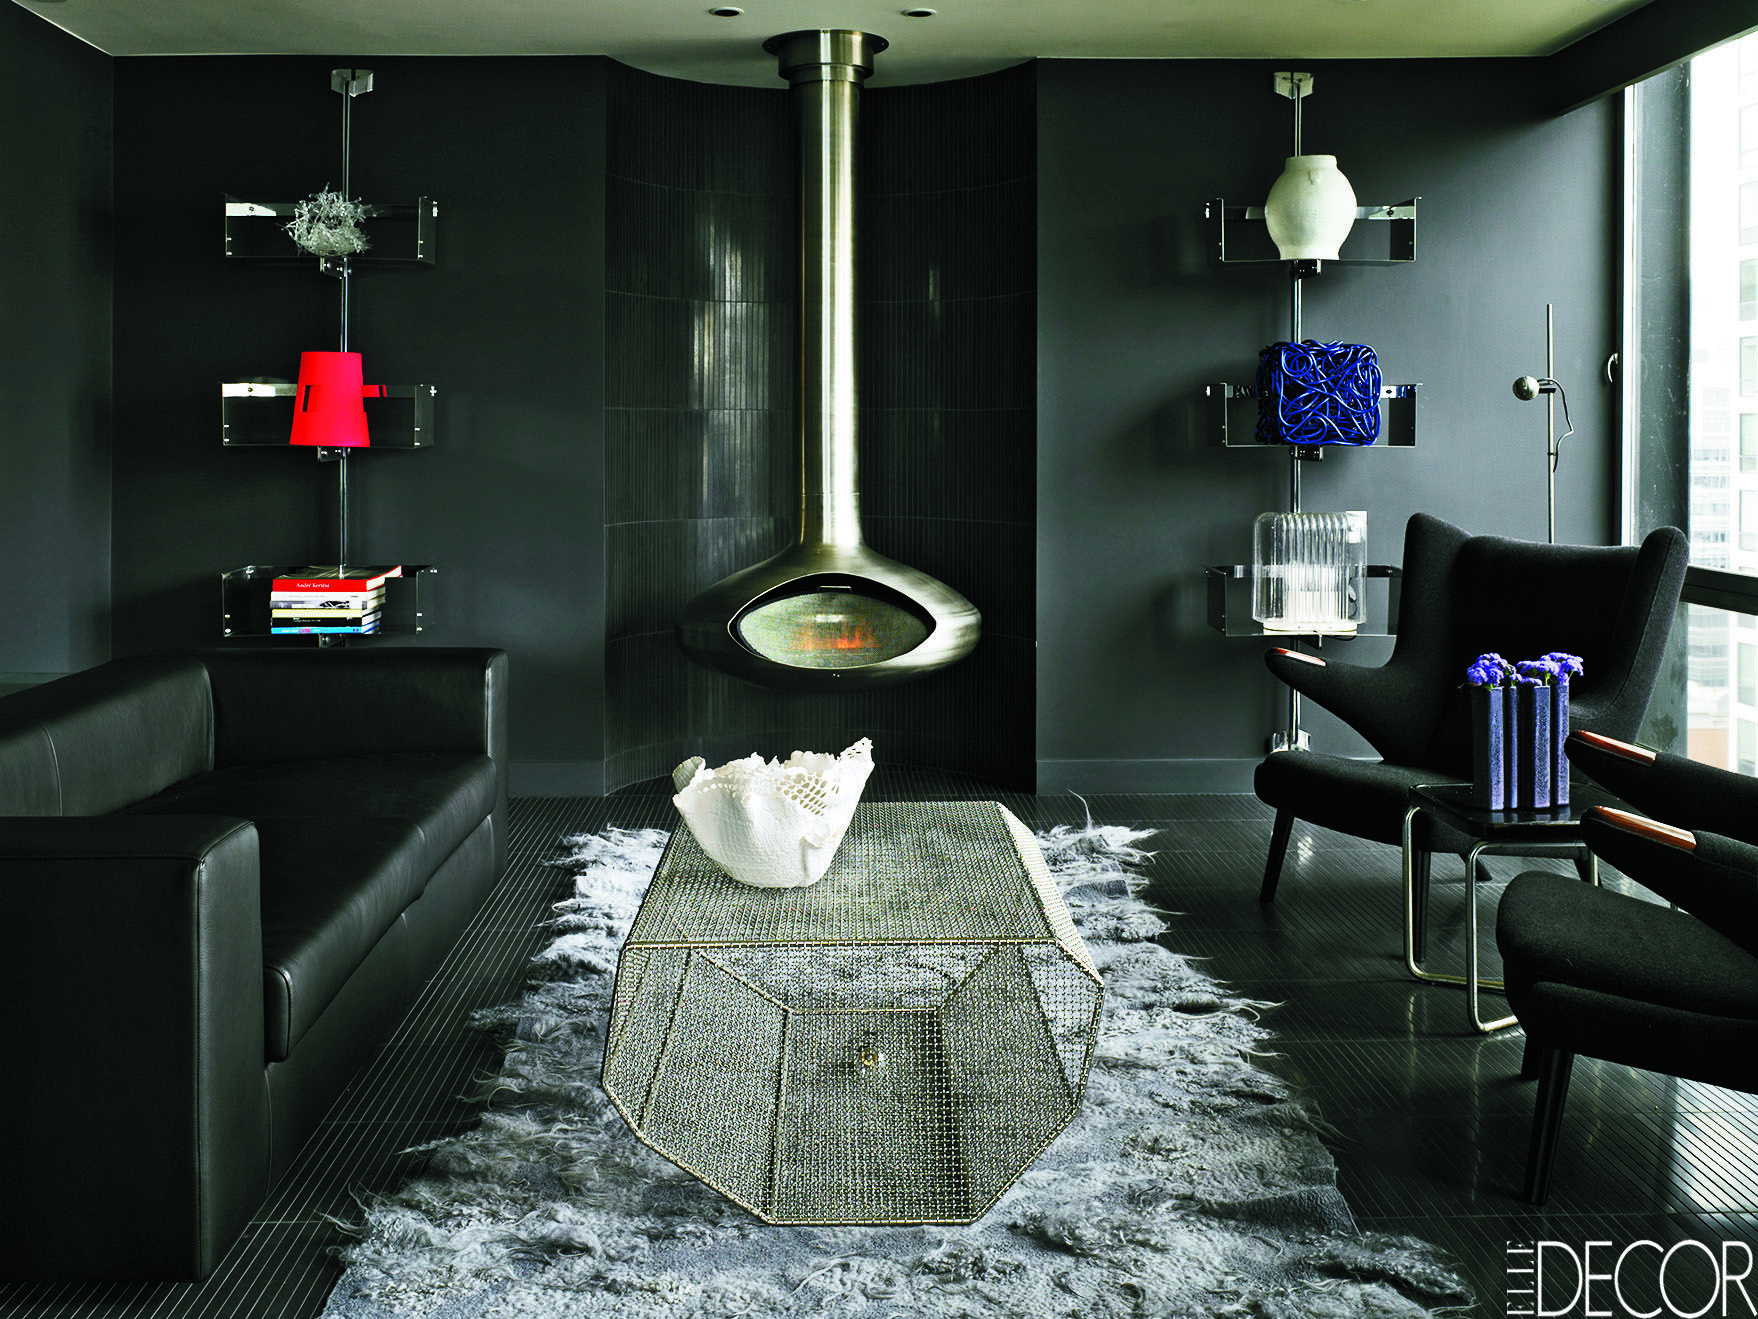 10 Black Room Decorating Ideas - How to Use Black Wall Paint ...